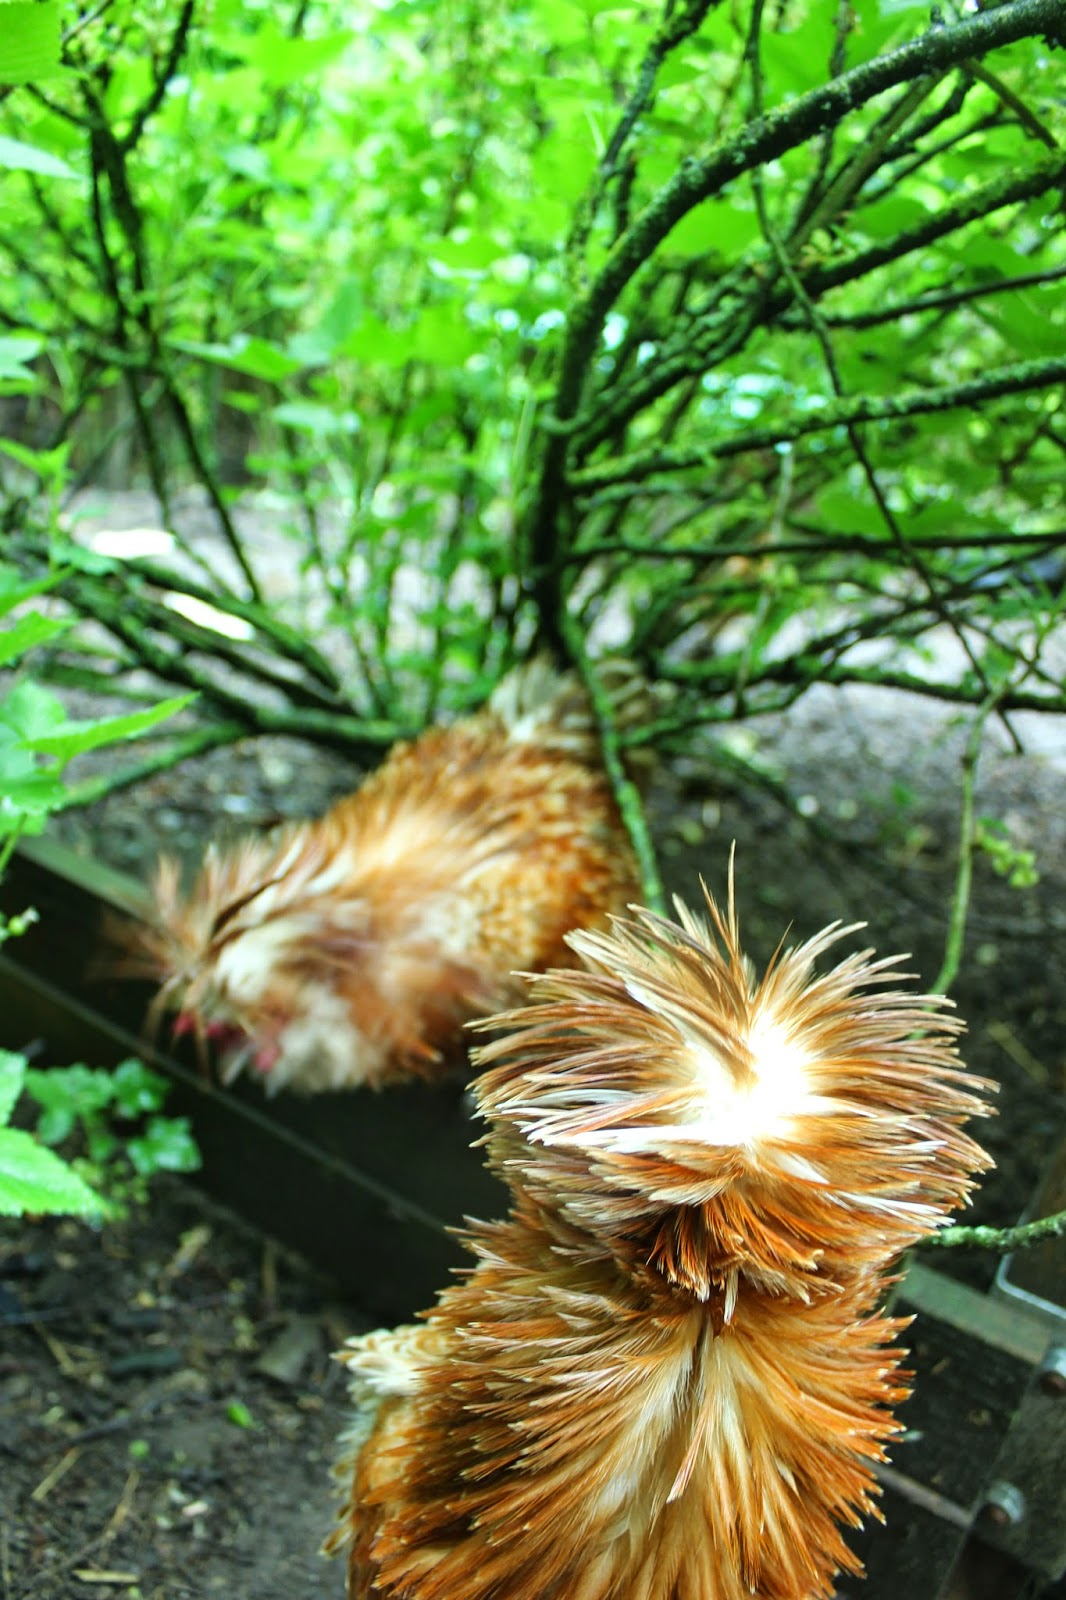 Frizzled chamois polish roosters in the rain in an organic forest garden